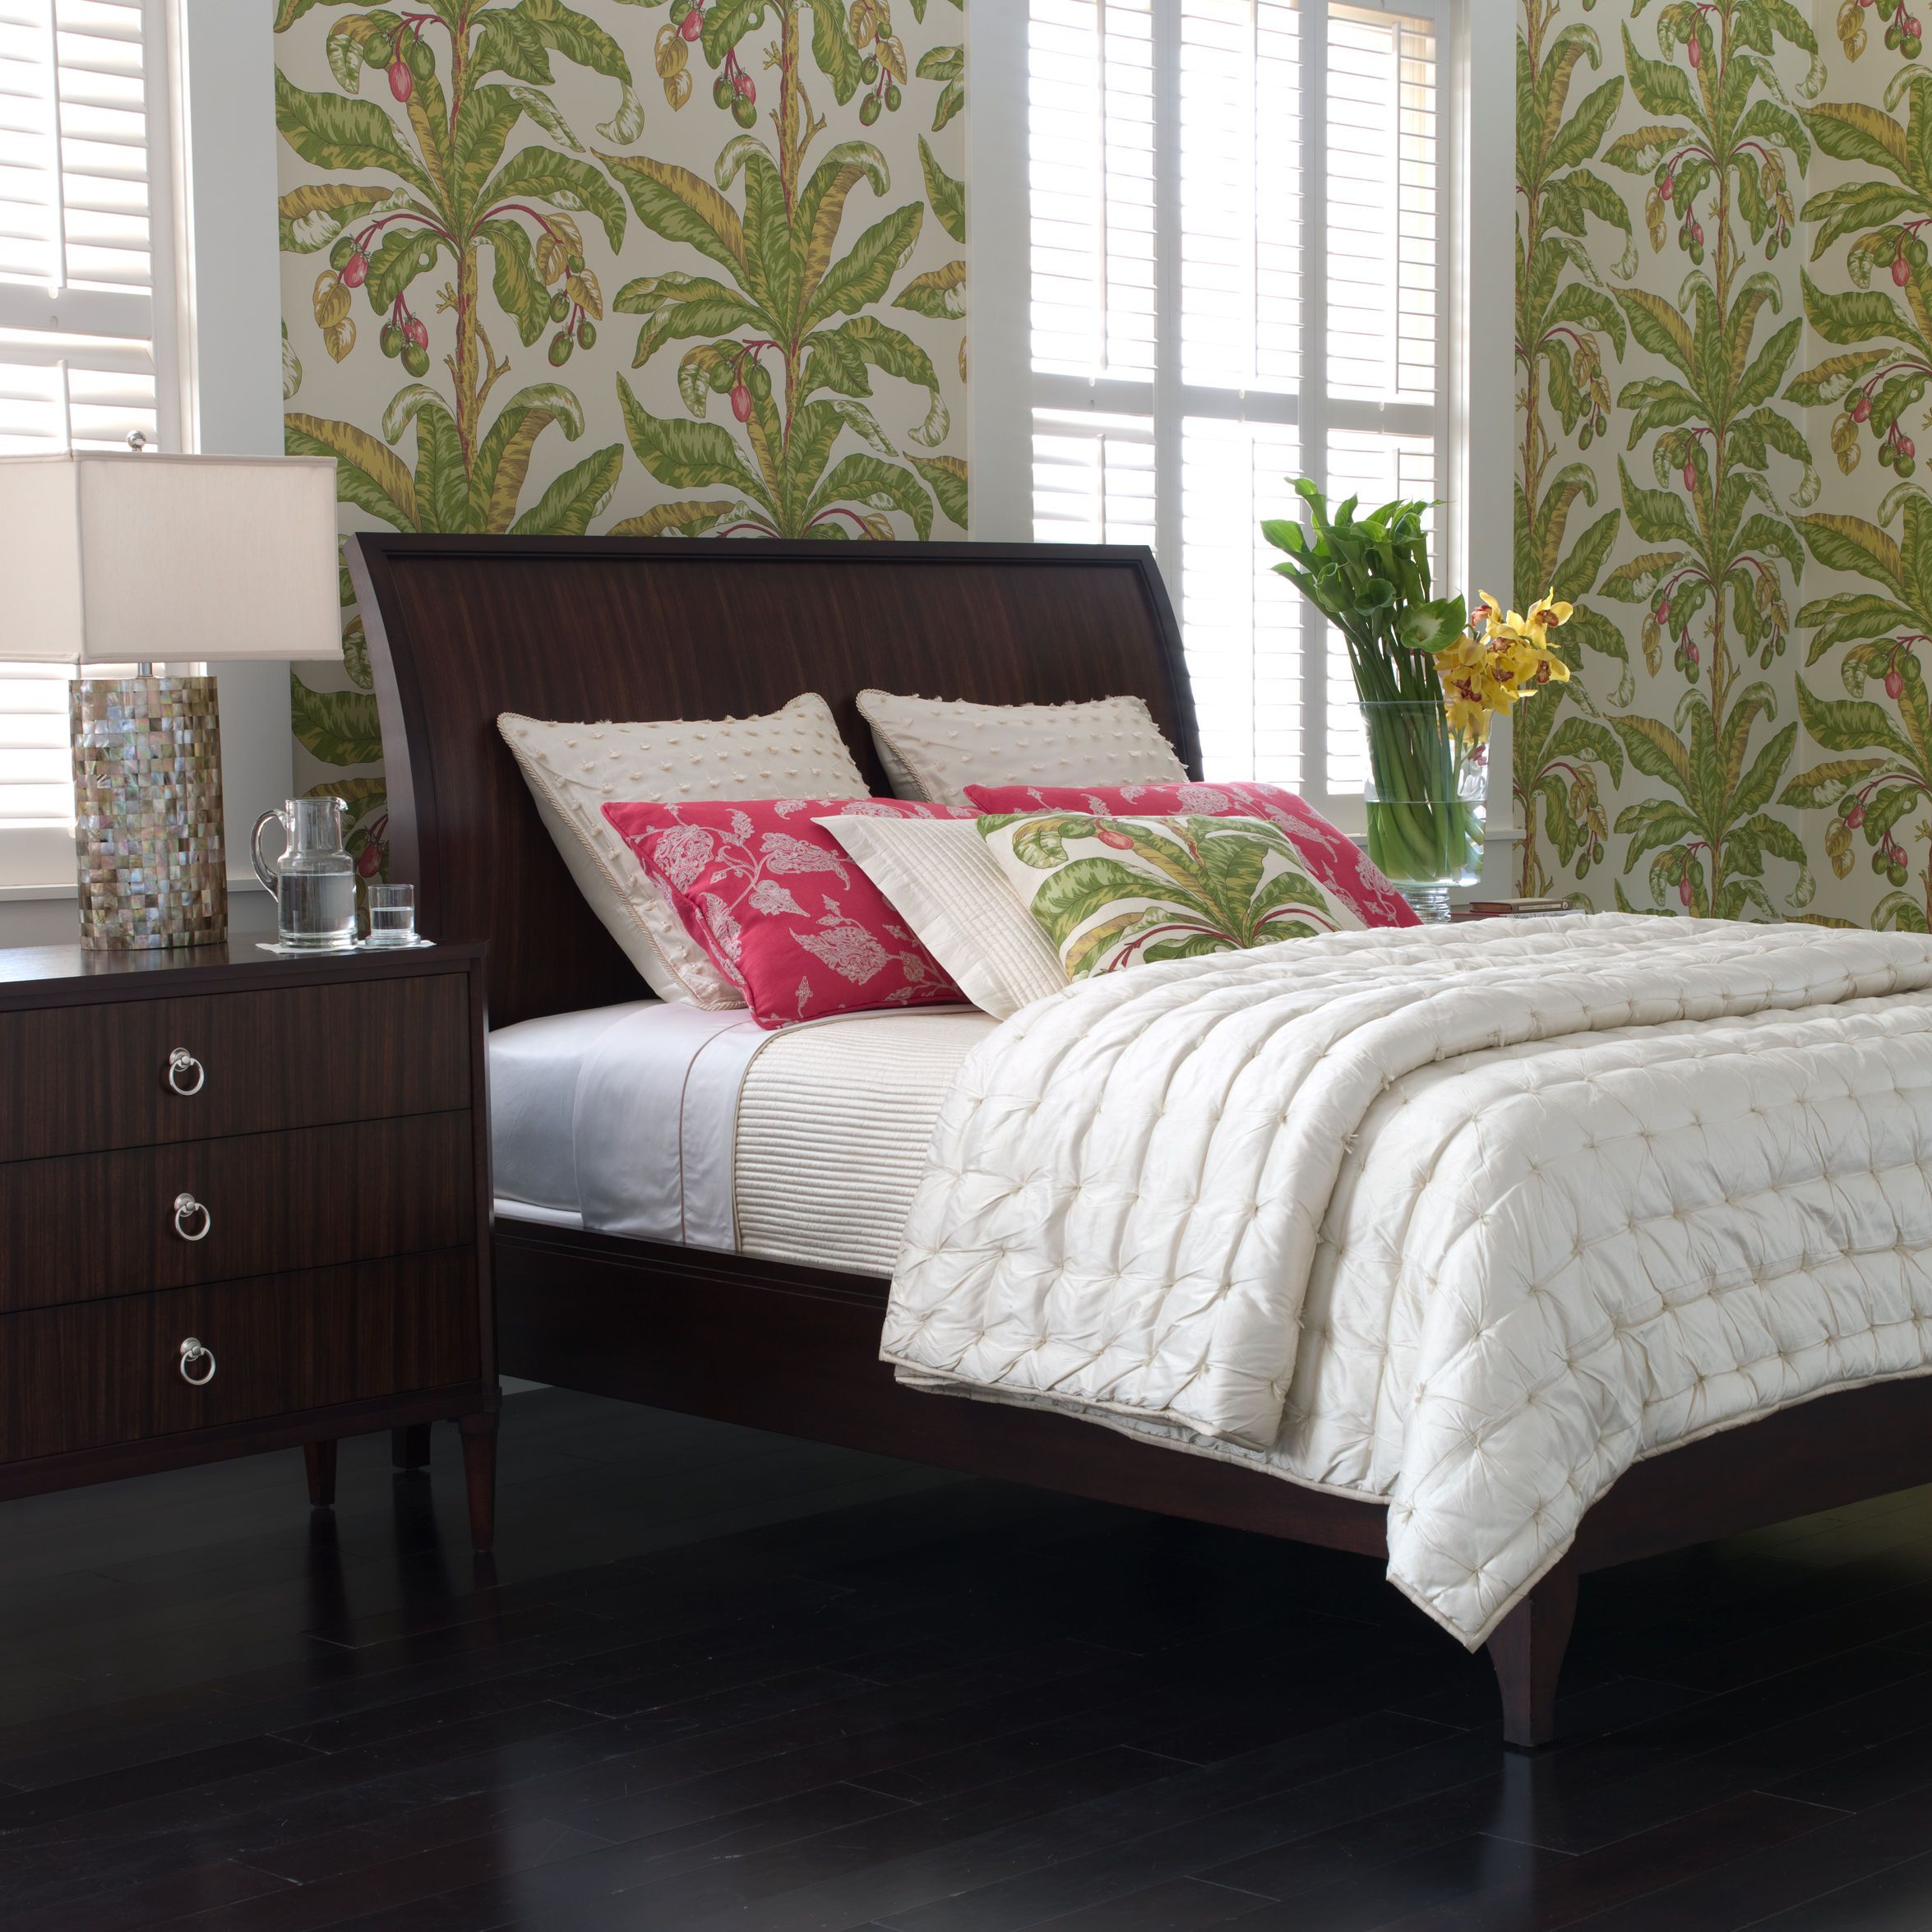 Ethan Allen Bedroom Sets Zen Type Bedroom Design Eiffel Tower Bedroom Decor Italian Bedroom Furniture Online: Gramercy Bed - Ethan Allen US